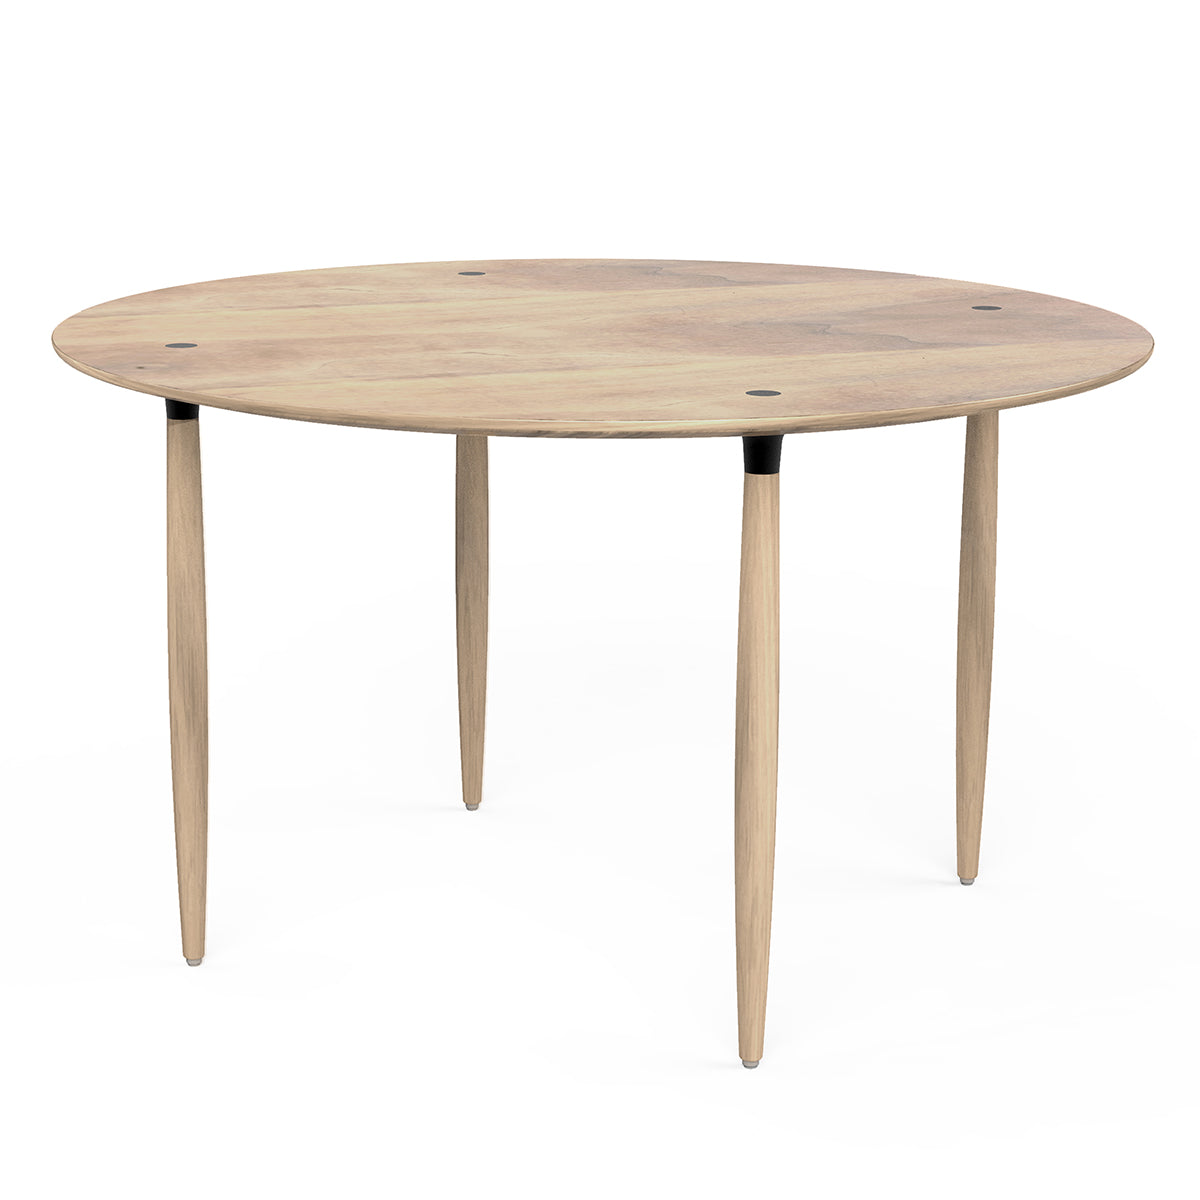 Slow Dining Table - Stellar Works - Do Shop